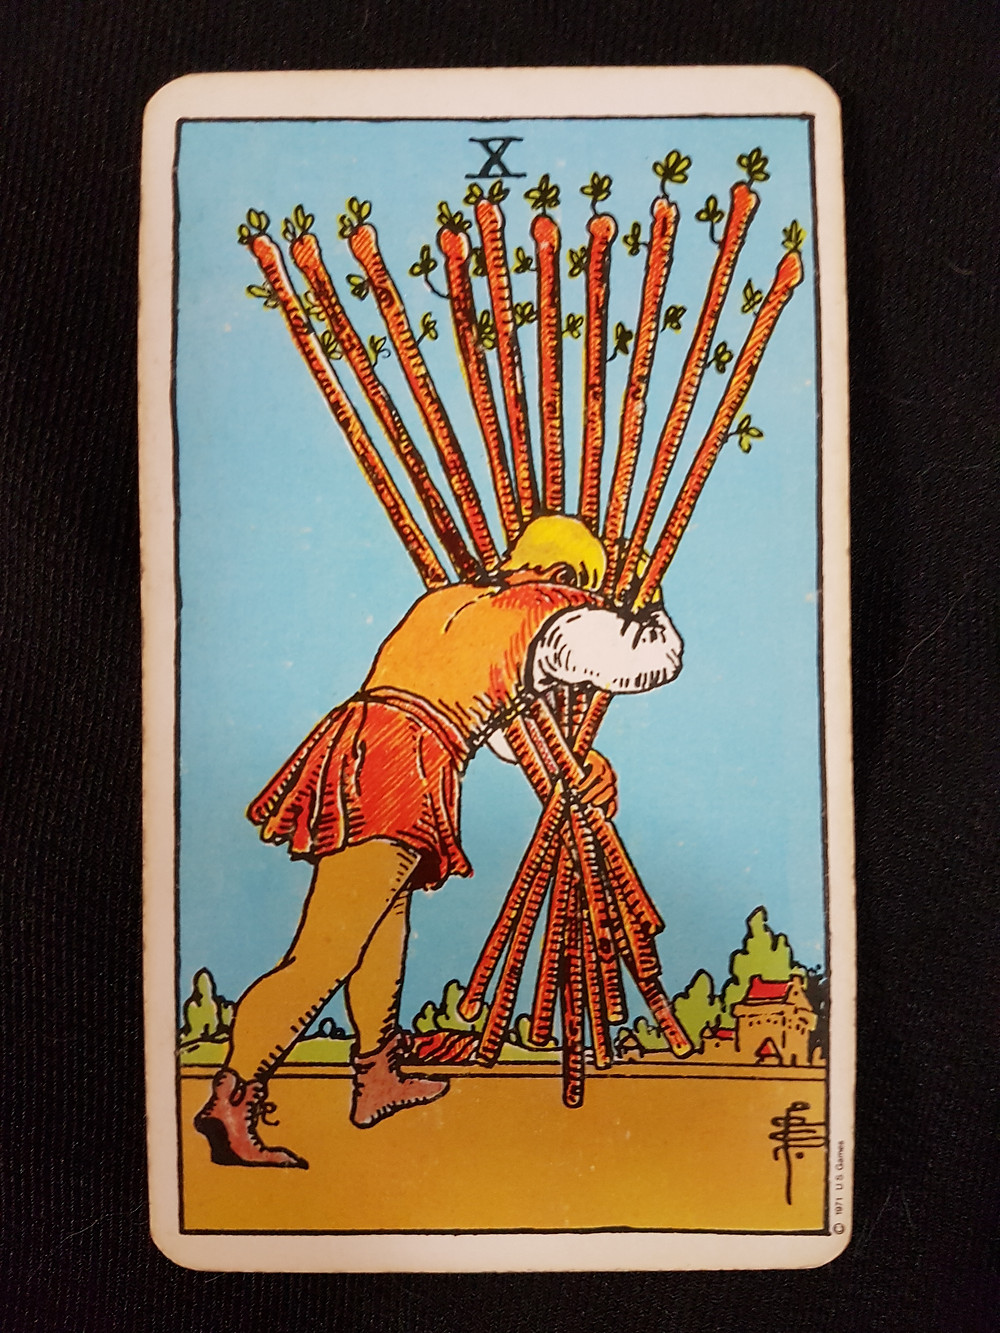 10 of Wands - lynsreadings.com